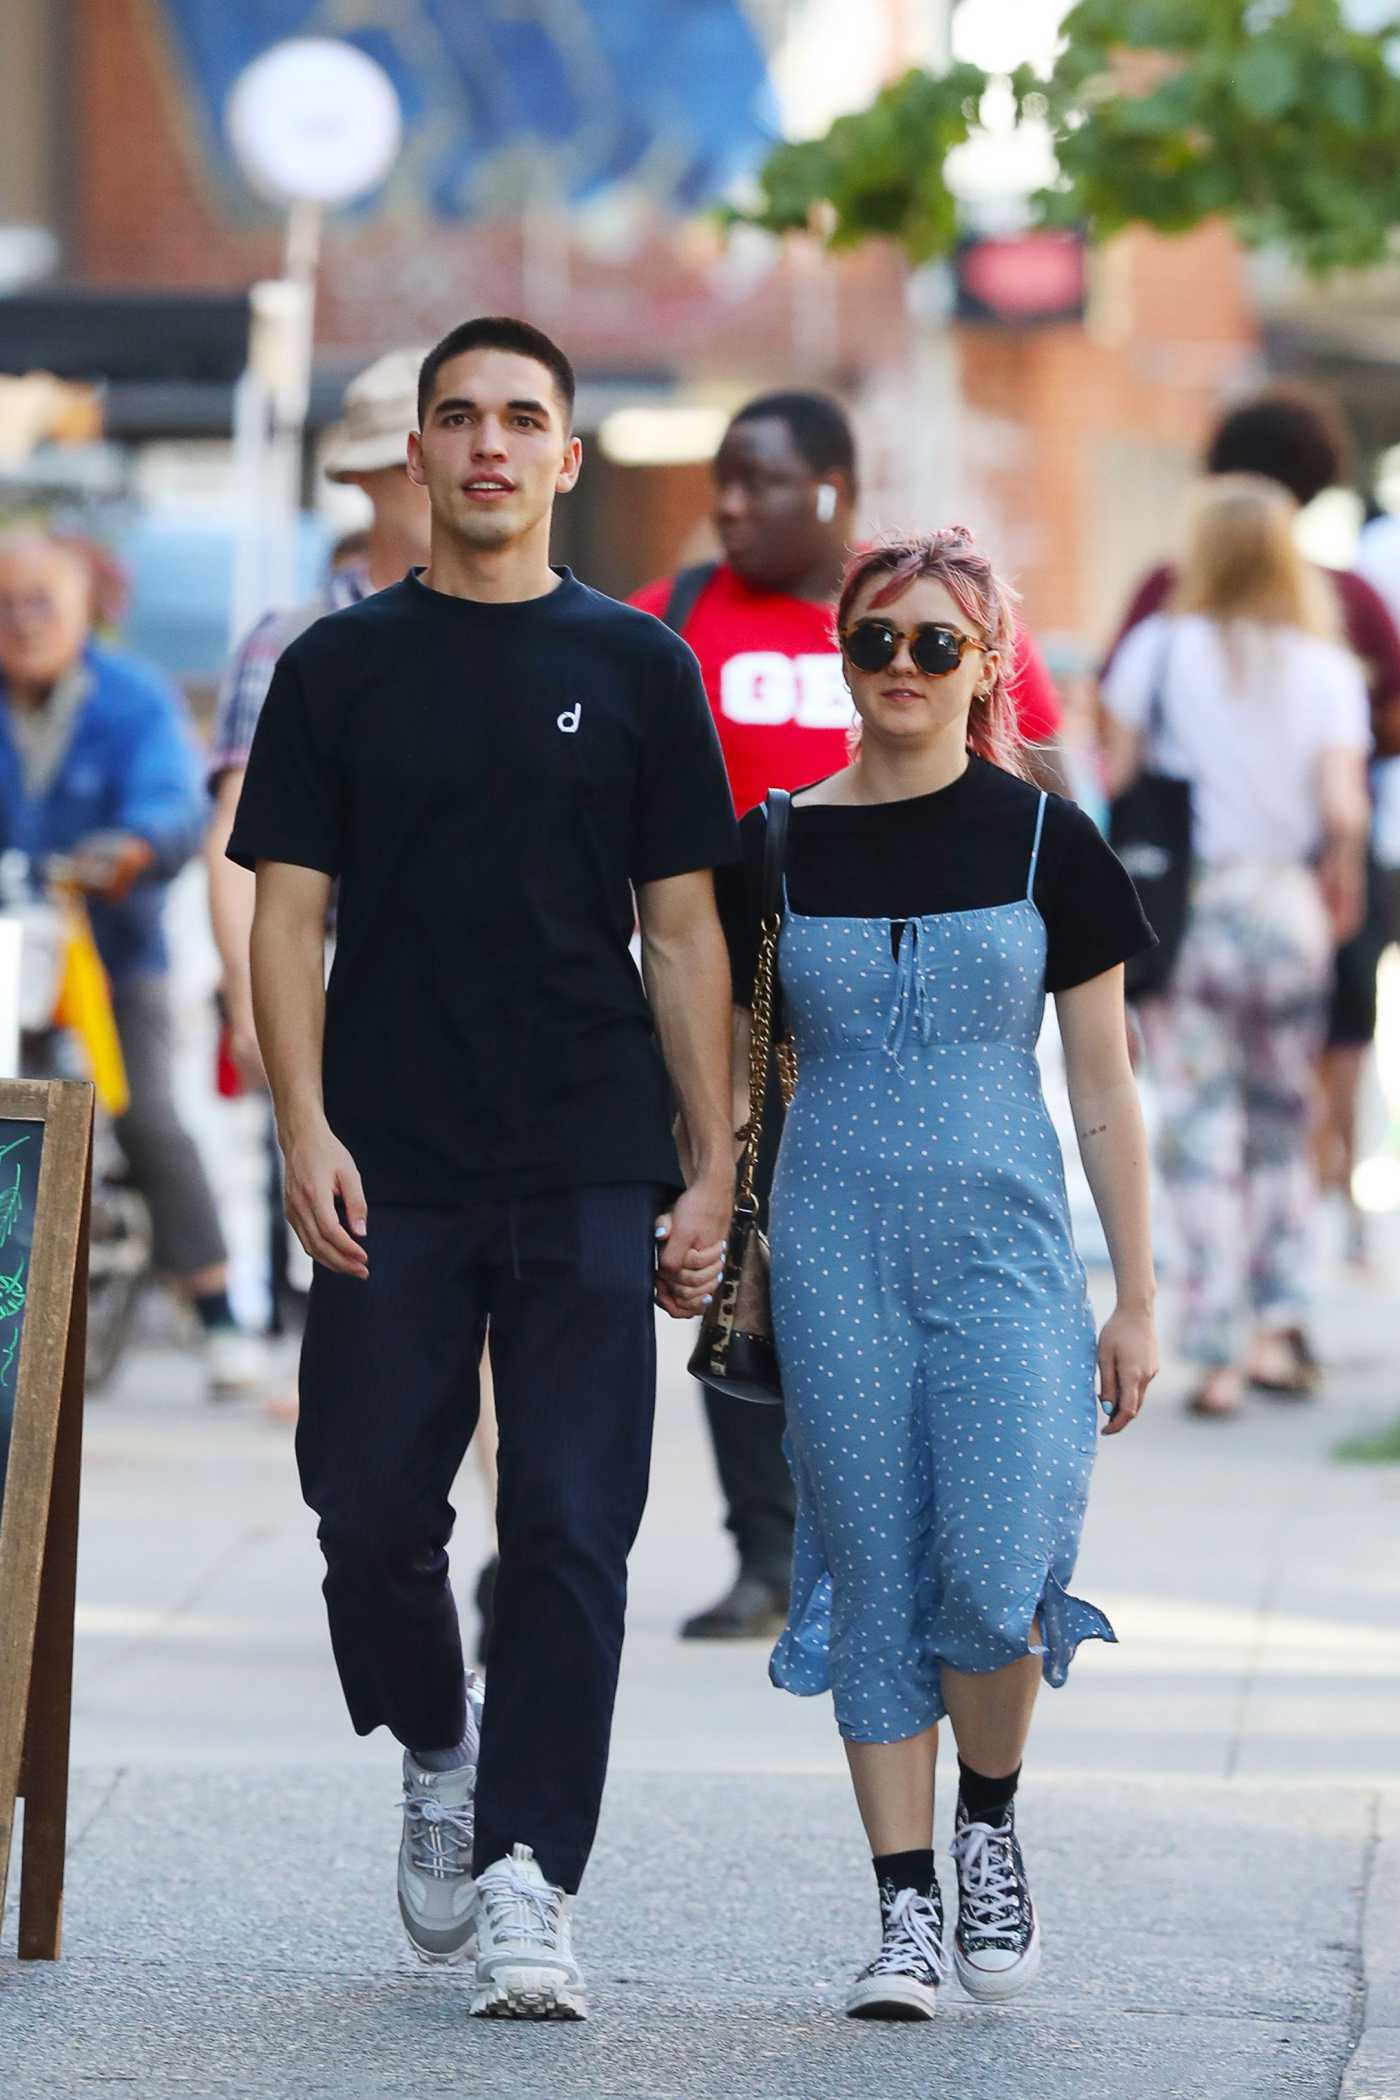 Maisie Williams Was Seen Out with Reuben Selby in SoHo, NY 08/29/2019